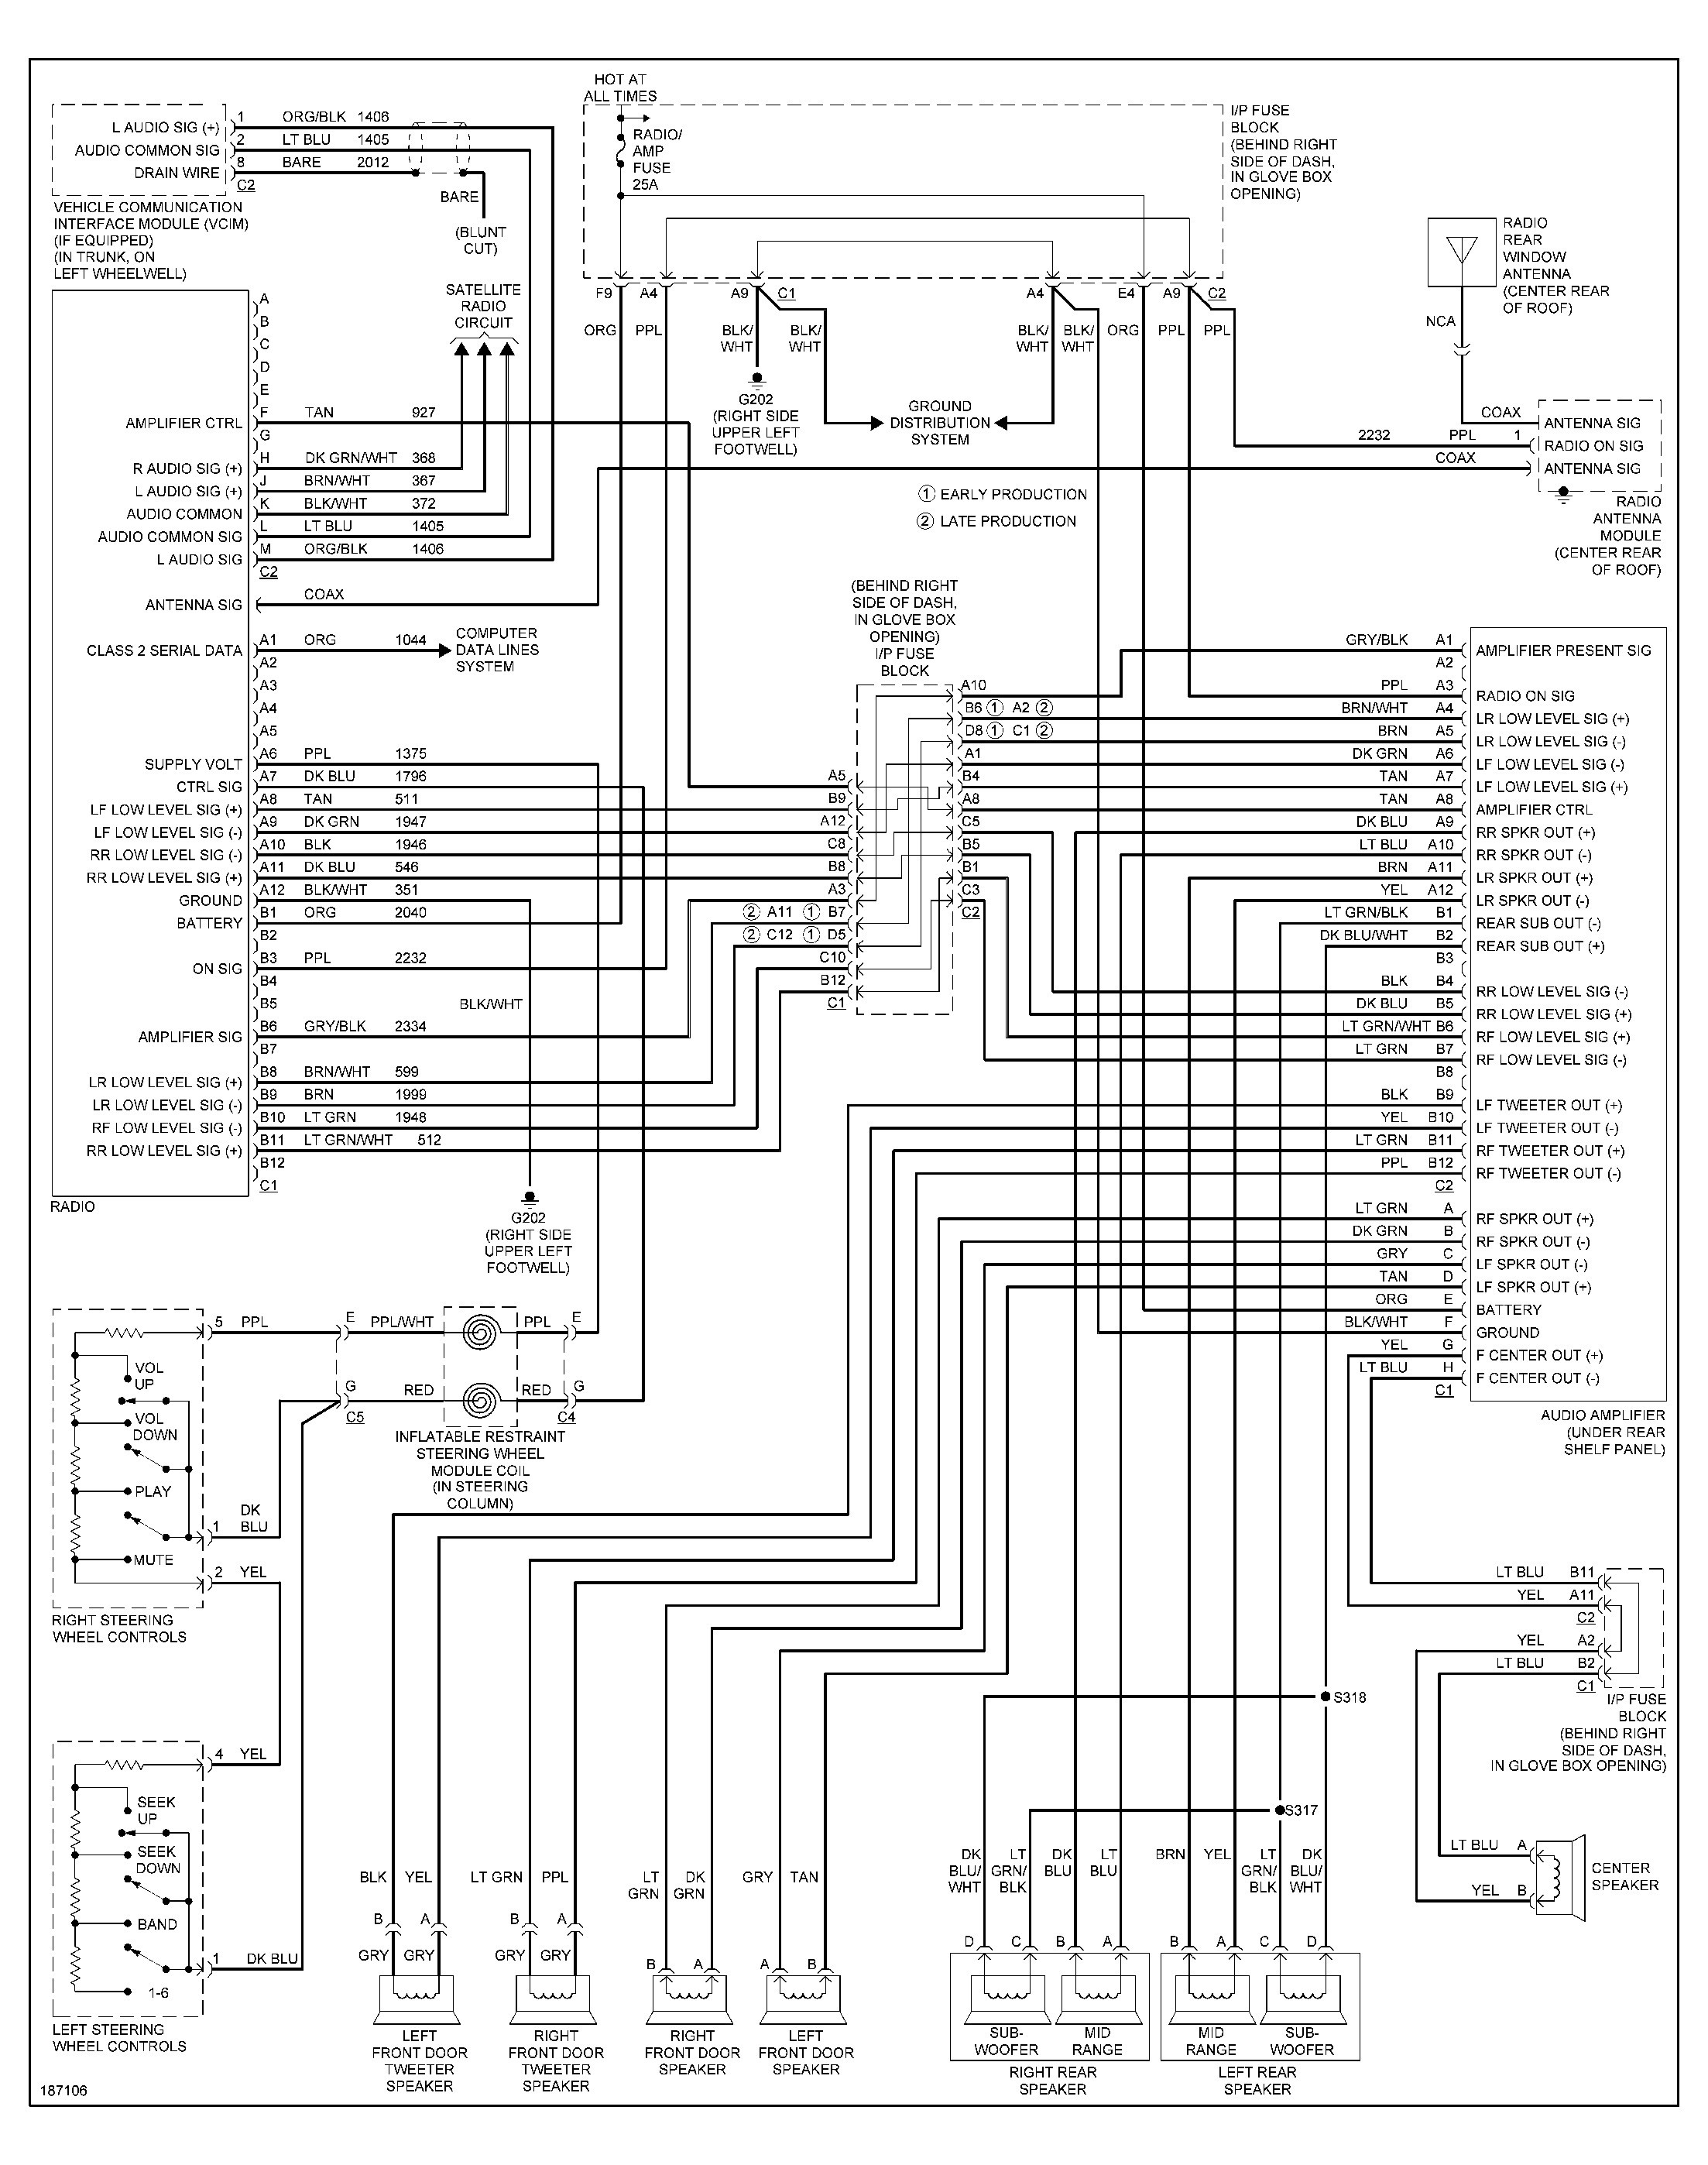 vz headlight wiring diagram impulse brake controller 2001 pontiac grand am engine my